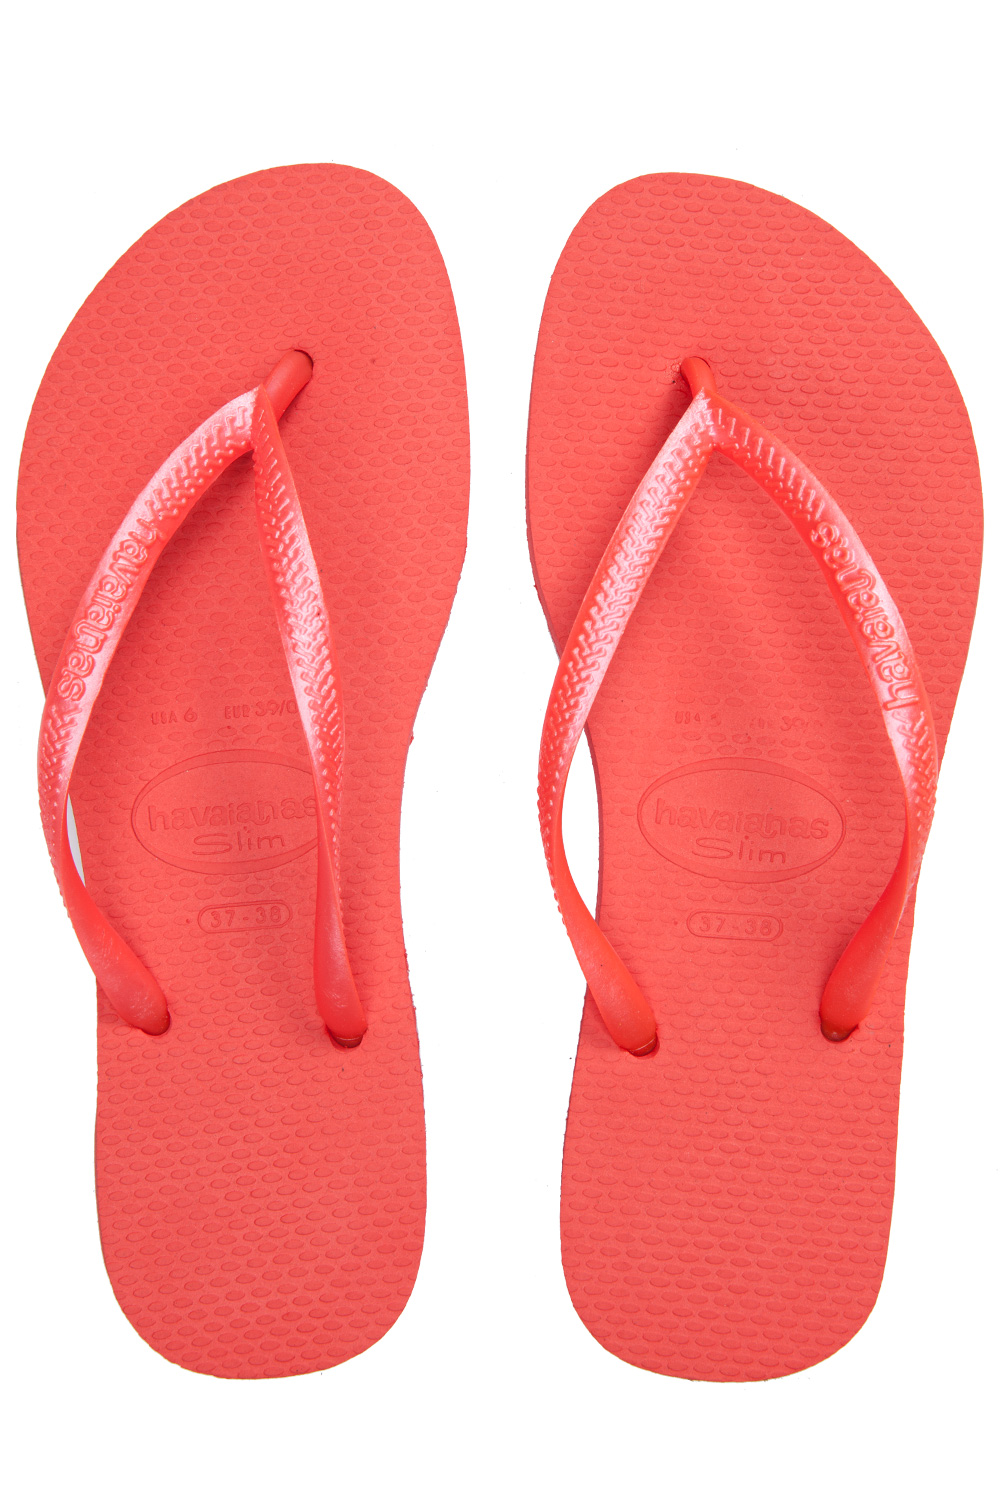 Havaianas slim guava red flip flops red 365ist for How to buy a house to flip